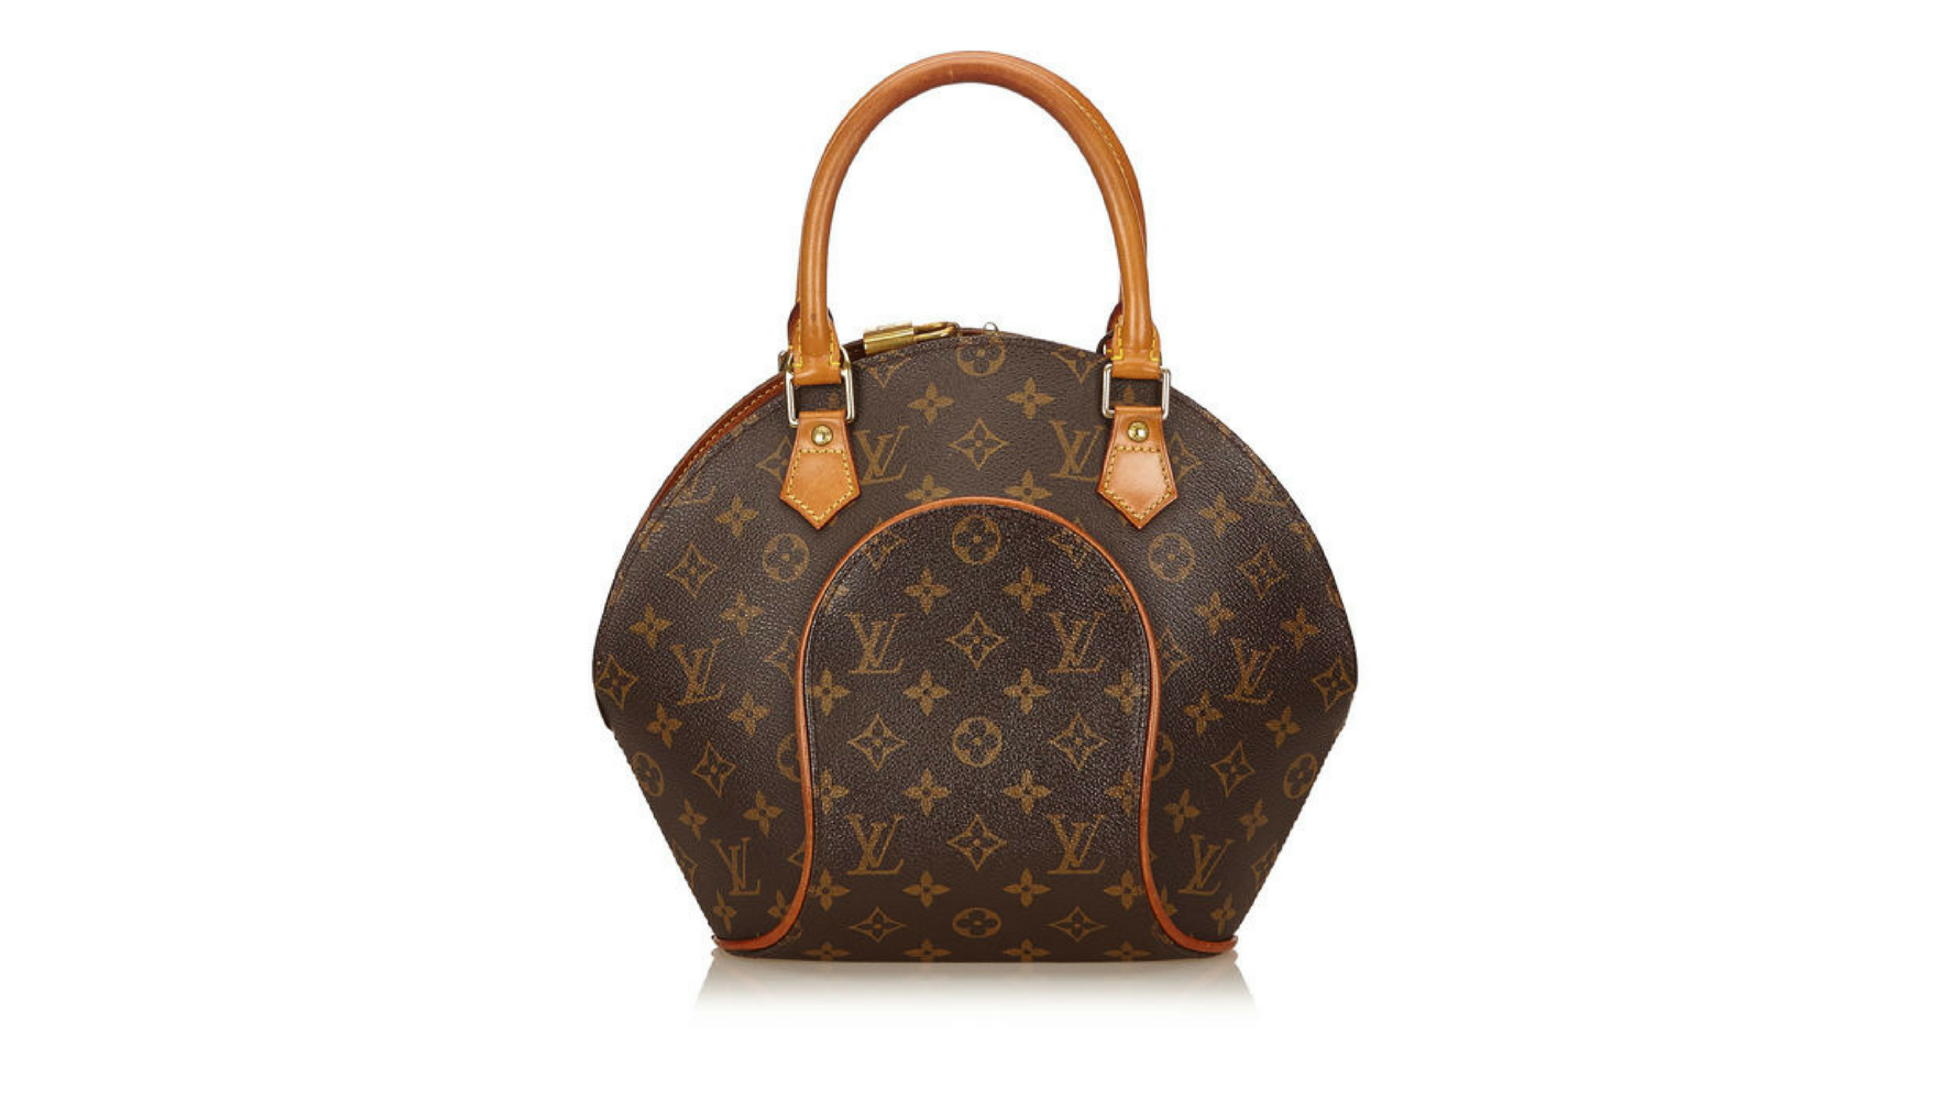 c92b346f90 Exclusivity is another secret to the success of the brand. Louis Vuitton  has always tried to counter mass production with short term limited edition  series.